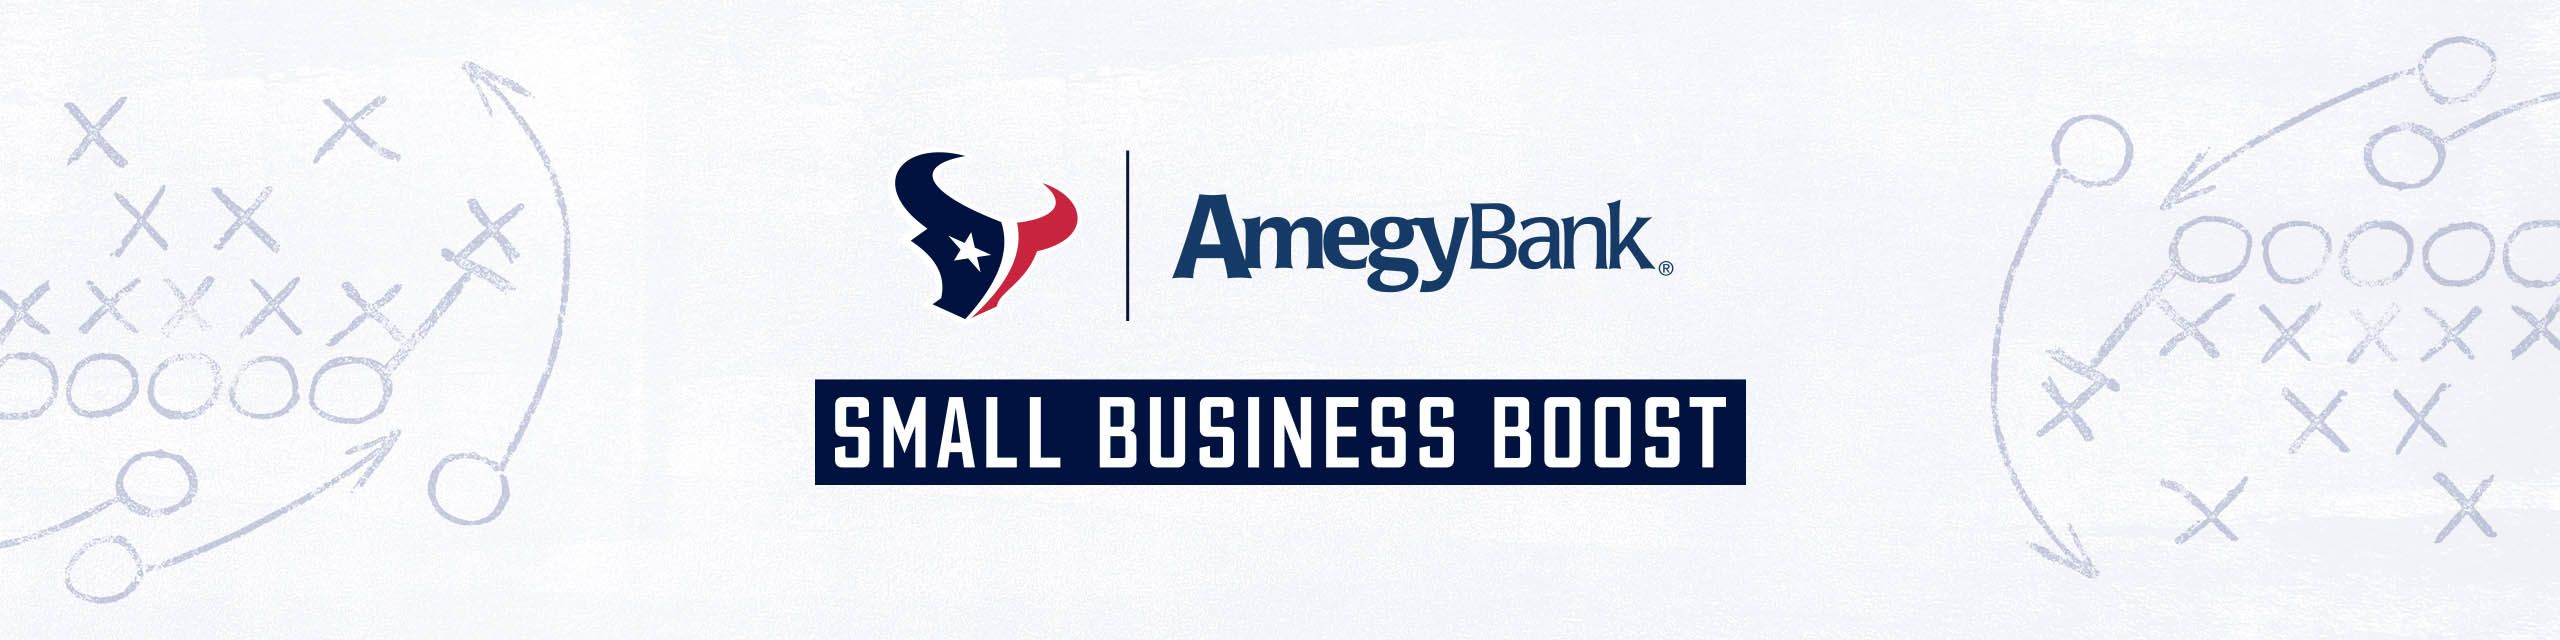 Small Business Boost. presented by Amegy Bank